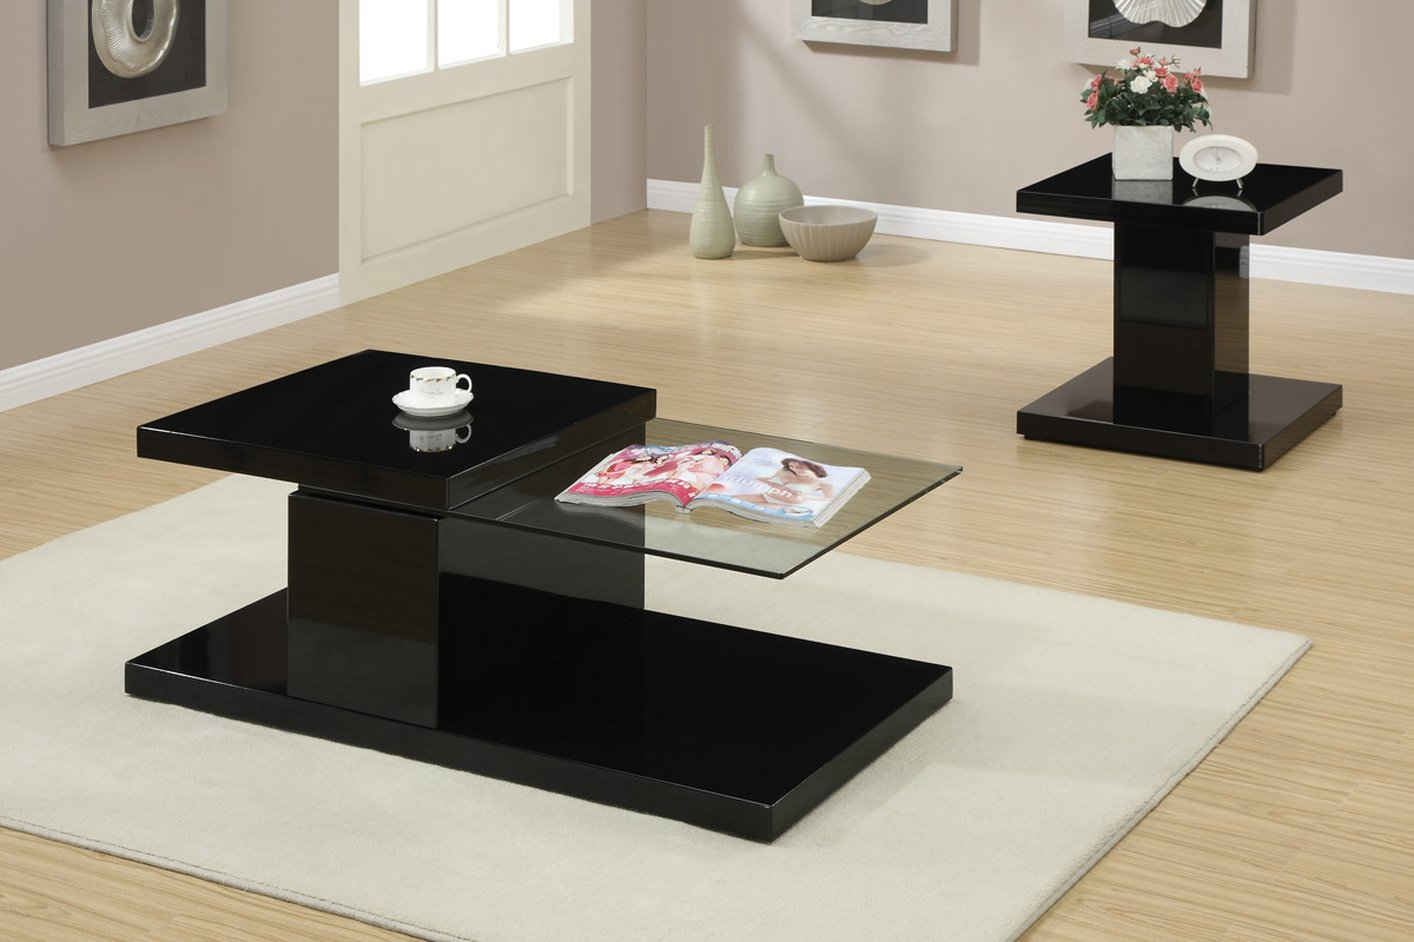 Myriad Black Glass Coffee Table - Steal-A-Sofa Furniture Outlet Los ...